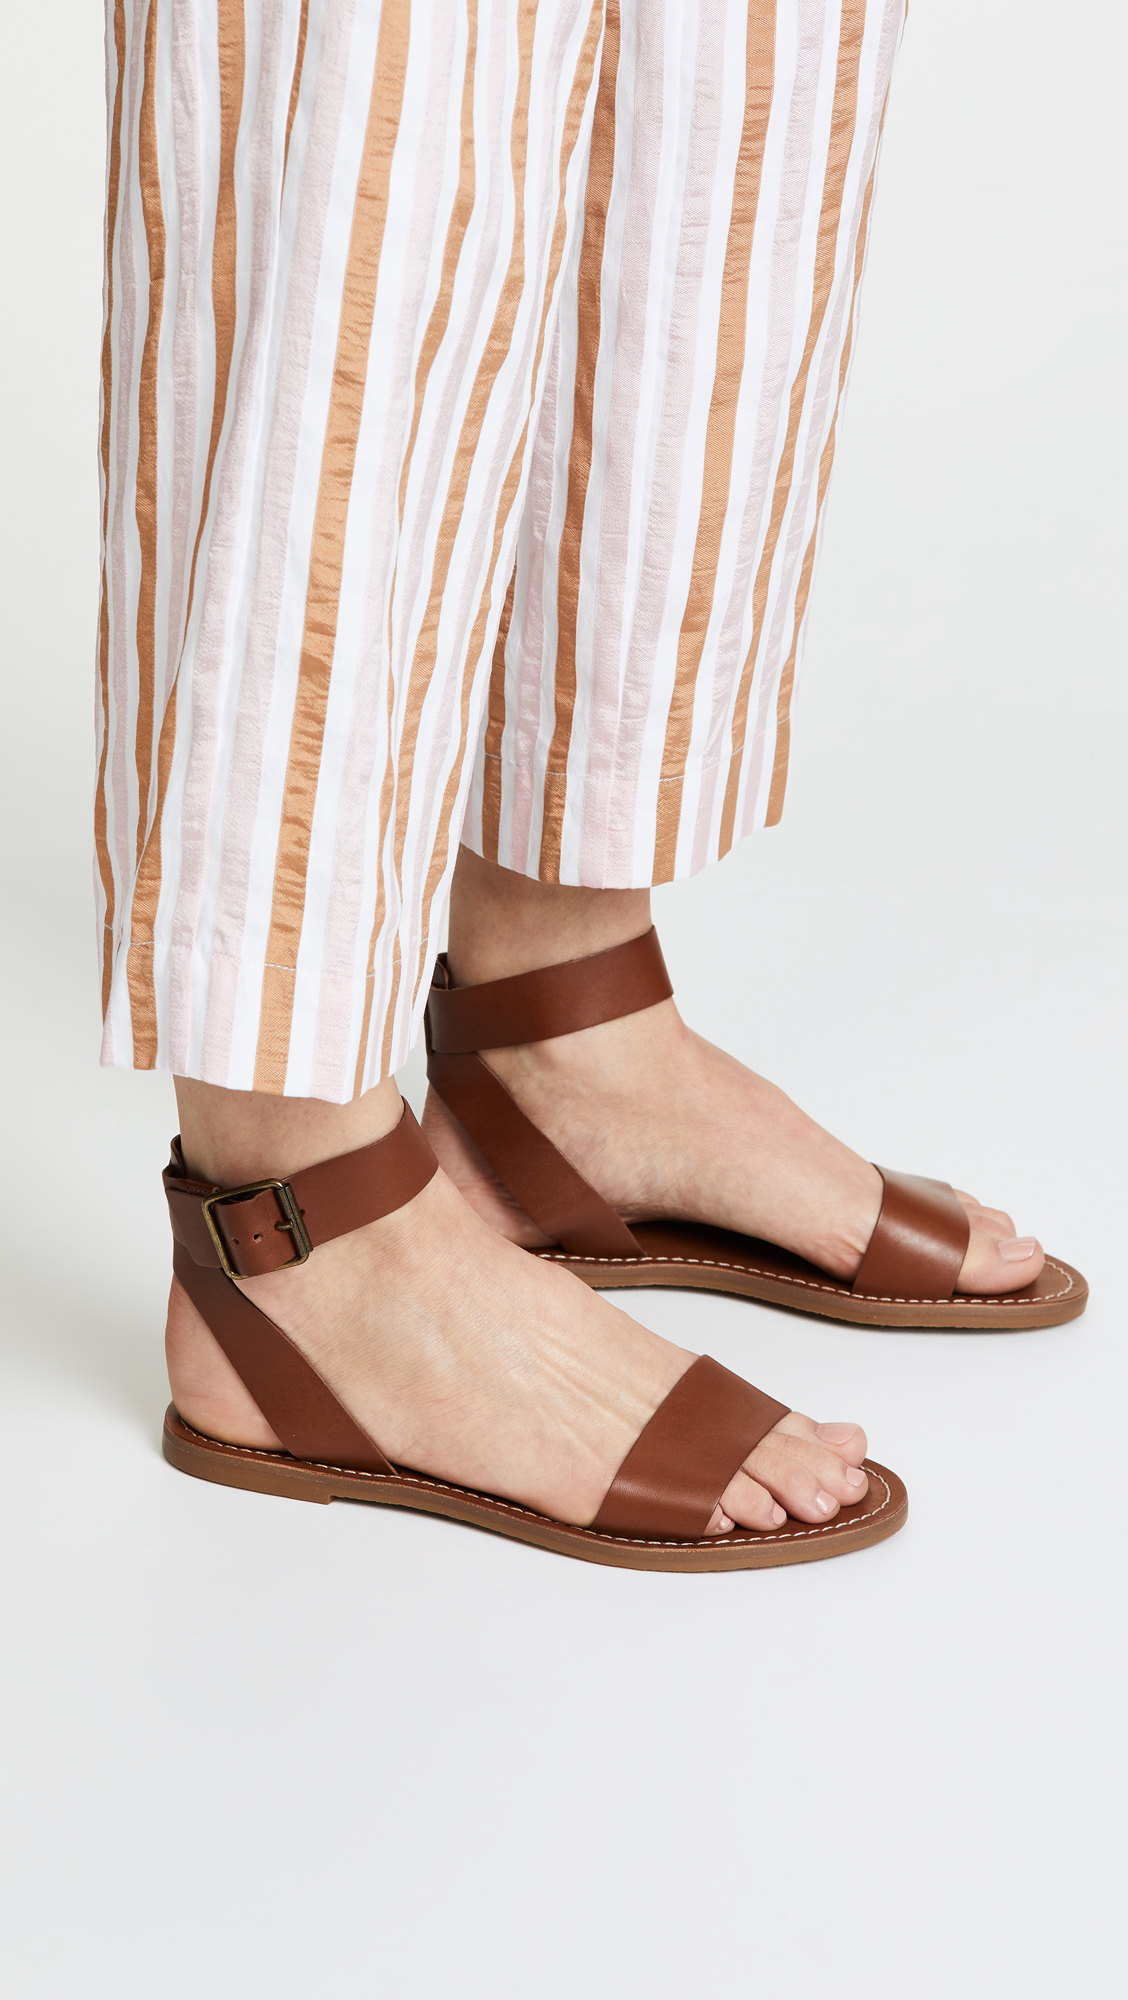 095c7842ef78 Madewell The Boardwalk Ankle-Strap Sandals